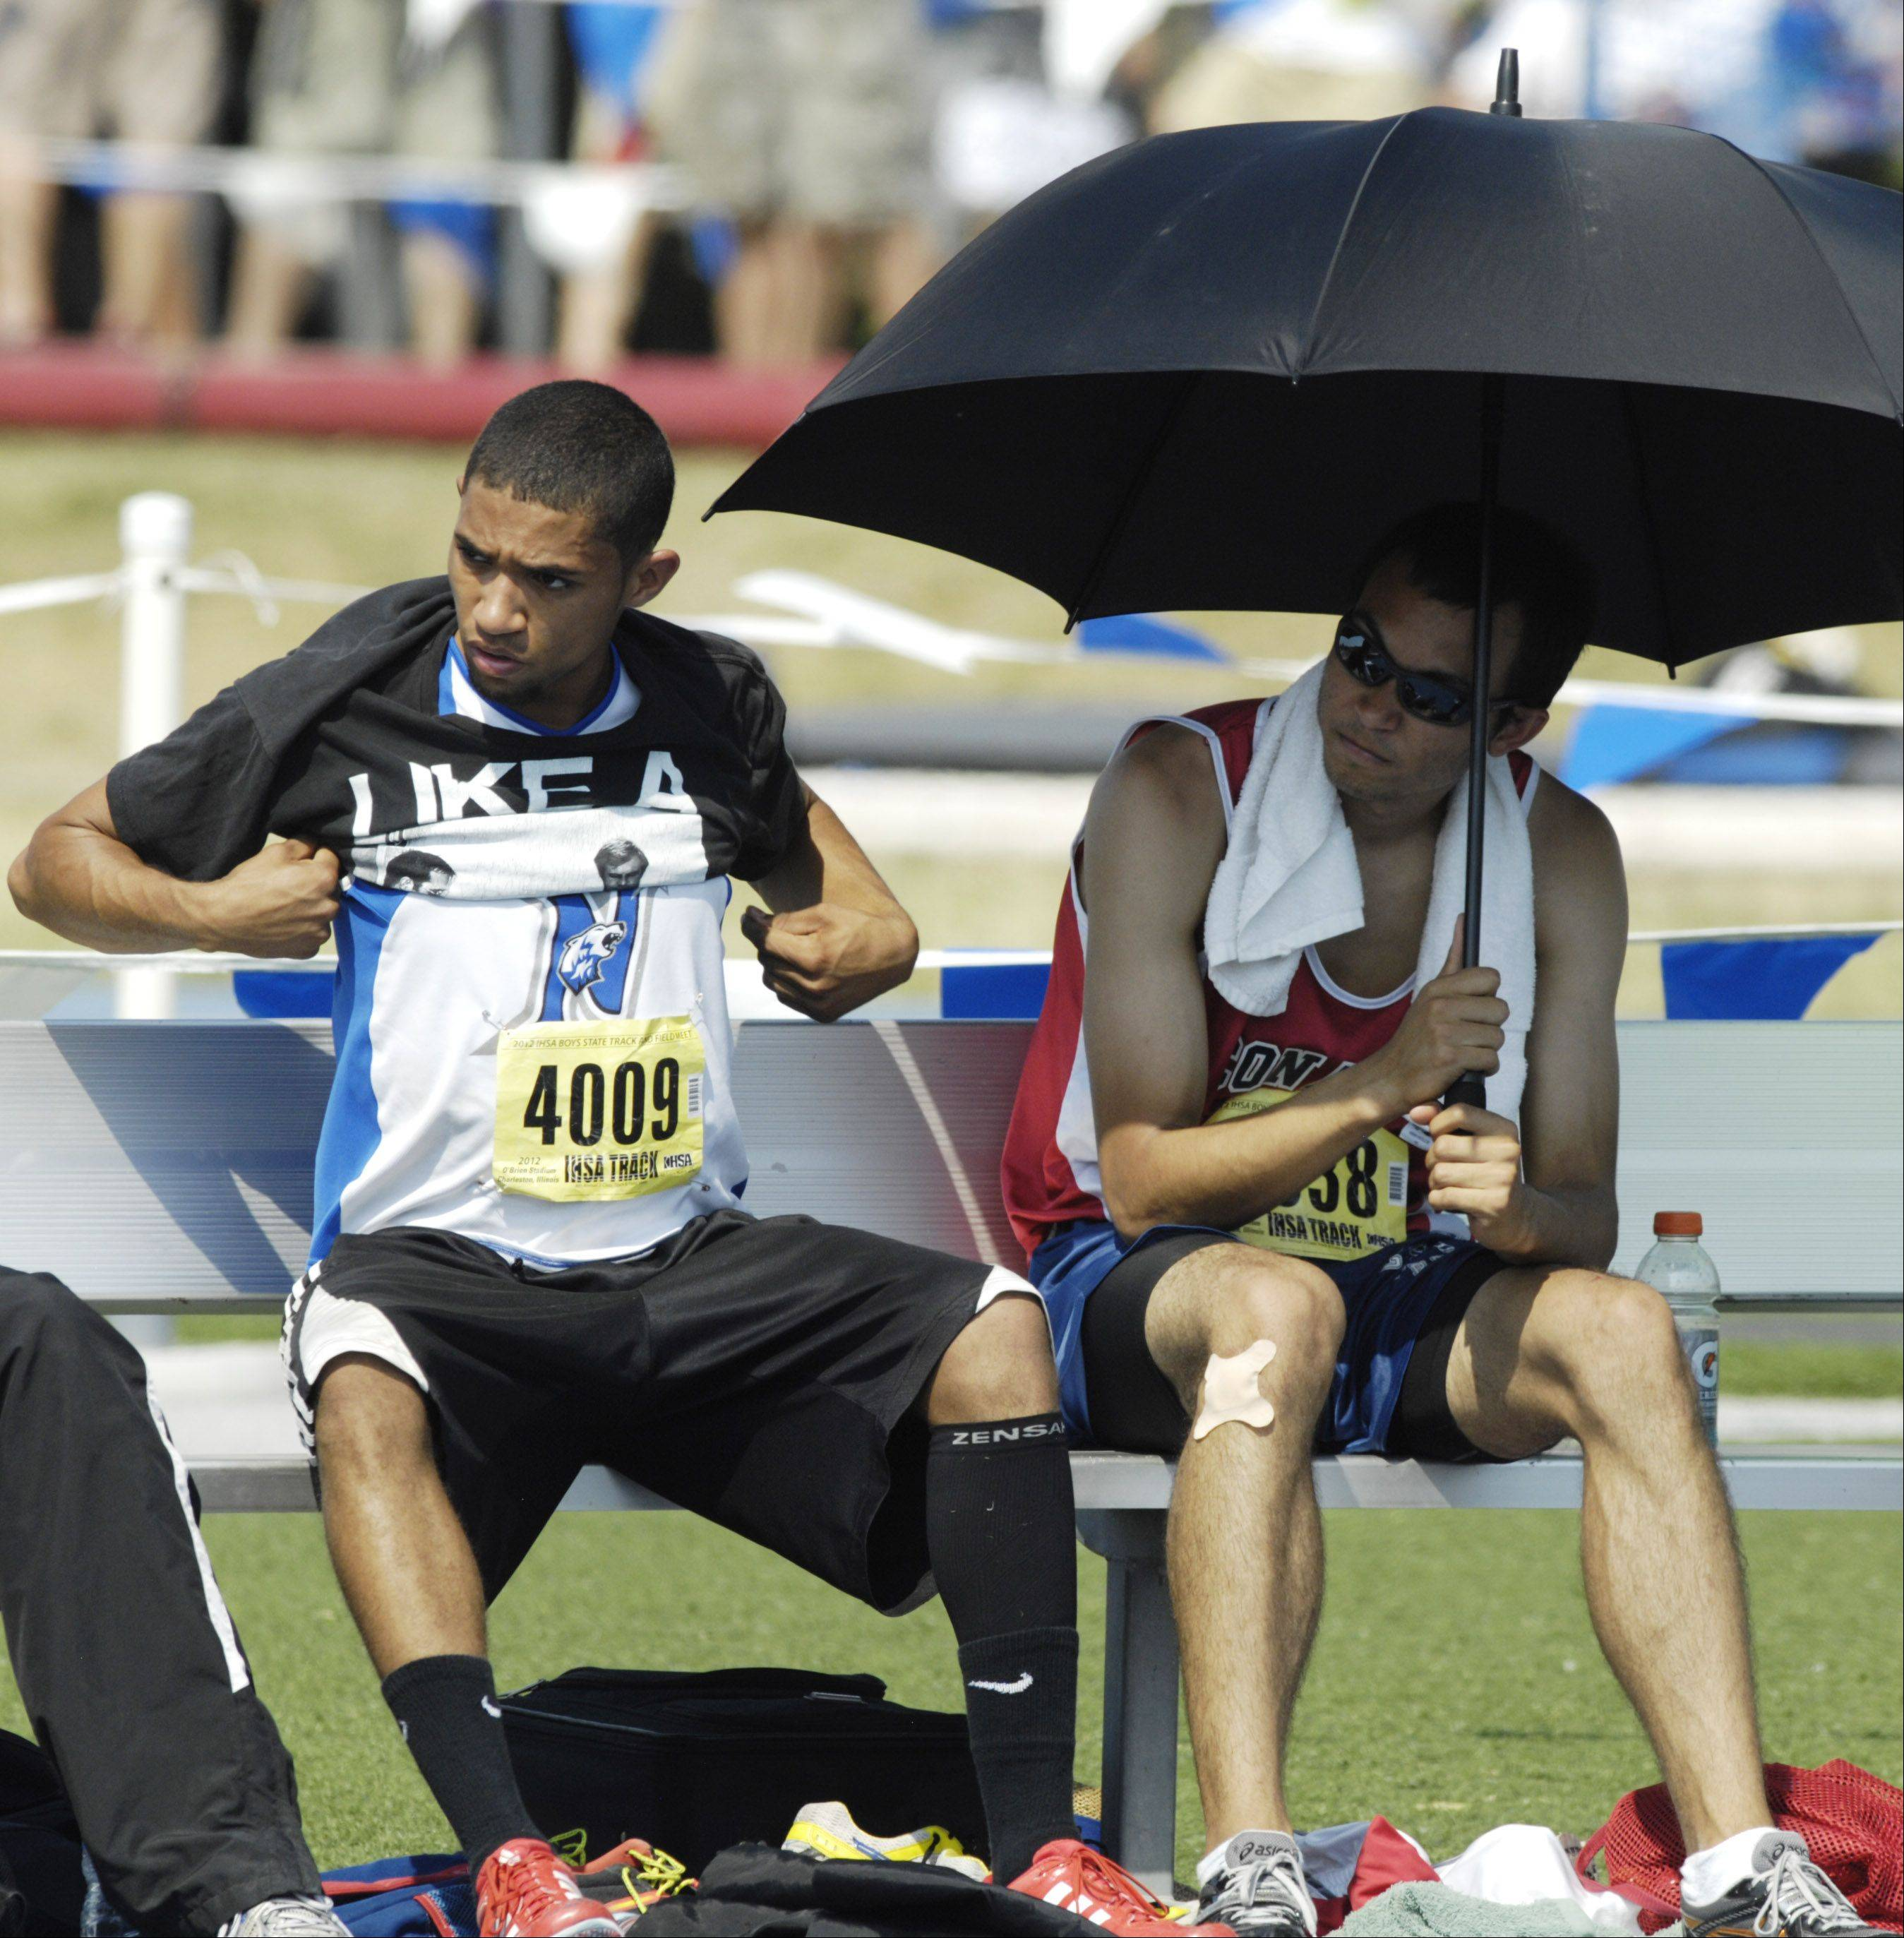 St. Charles North's Oshay Hodges sits next to Conant's Ben Bowers who is shading himself with an umbrella Saturday.